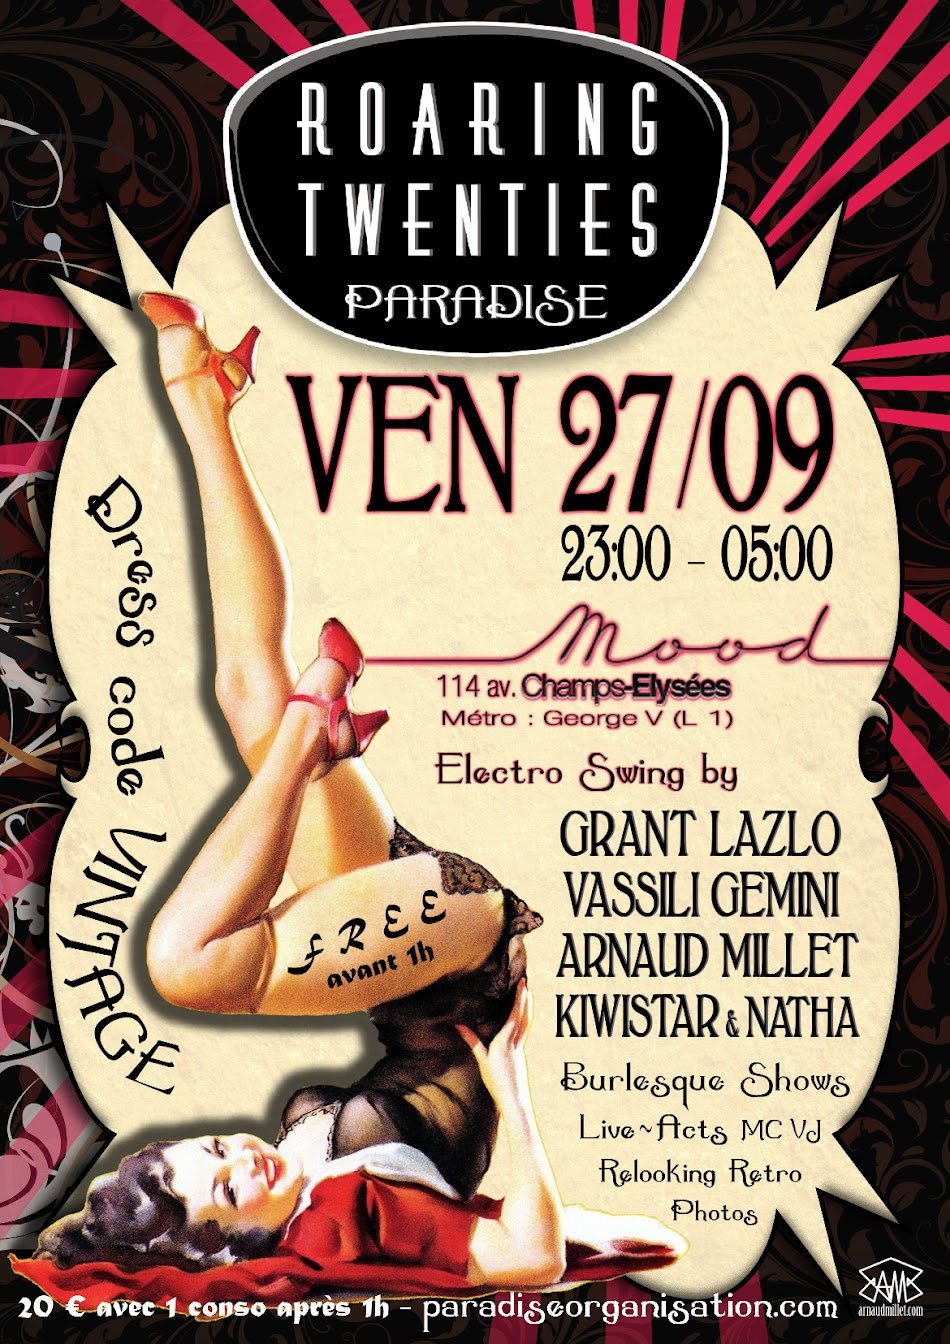 Paradise Organisation - Arnaud Millet - Roaring Twenties - Vintage - Electro-Swing - 1920 - 2020 - A century of crazy years